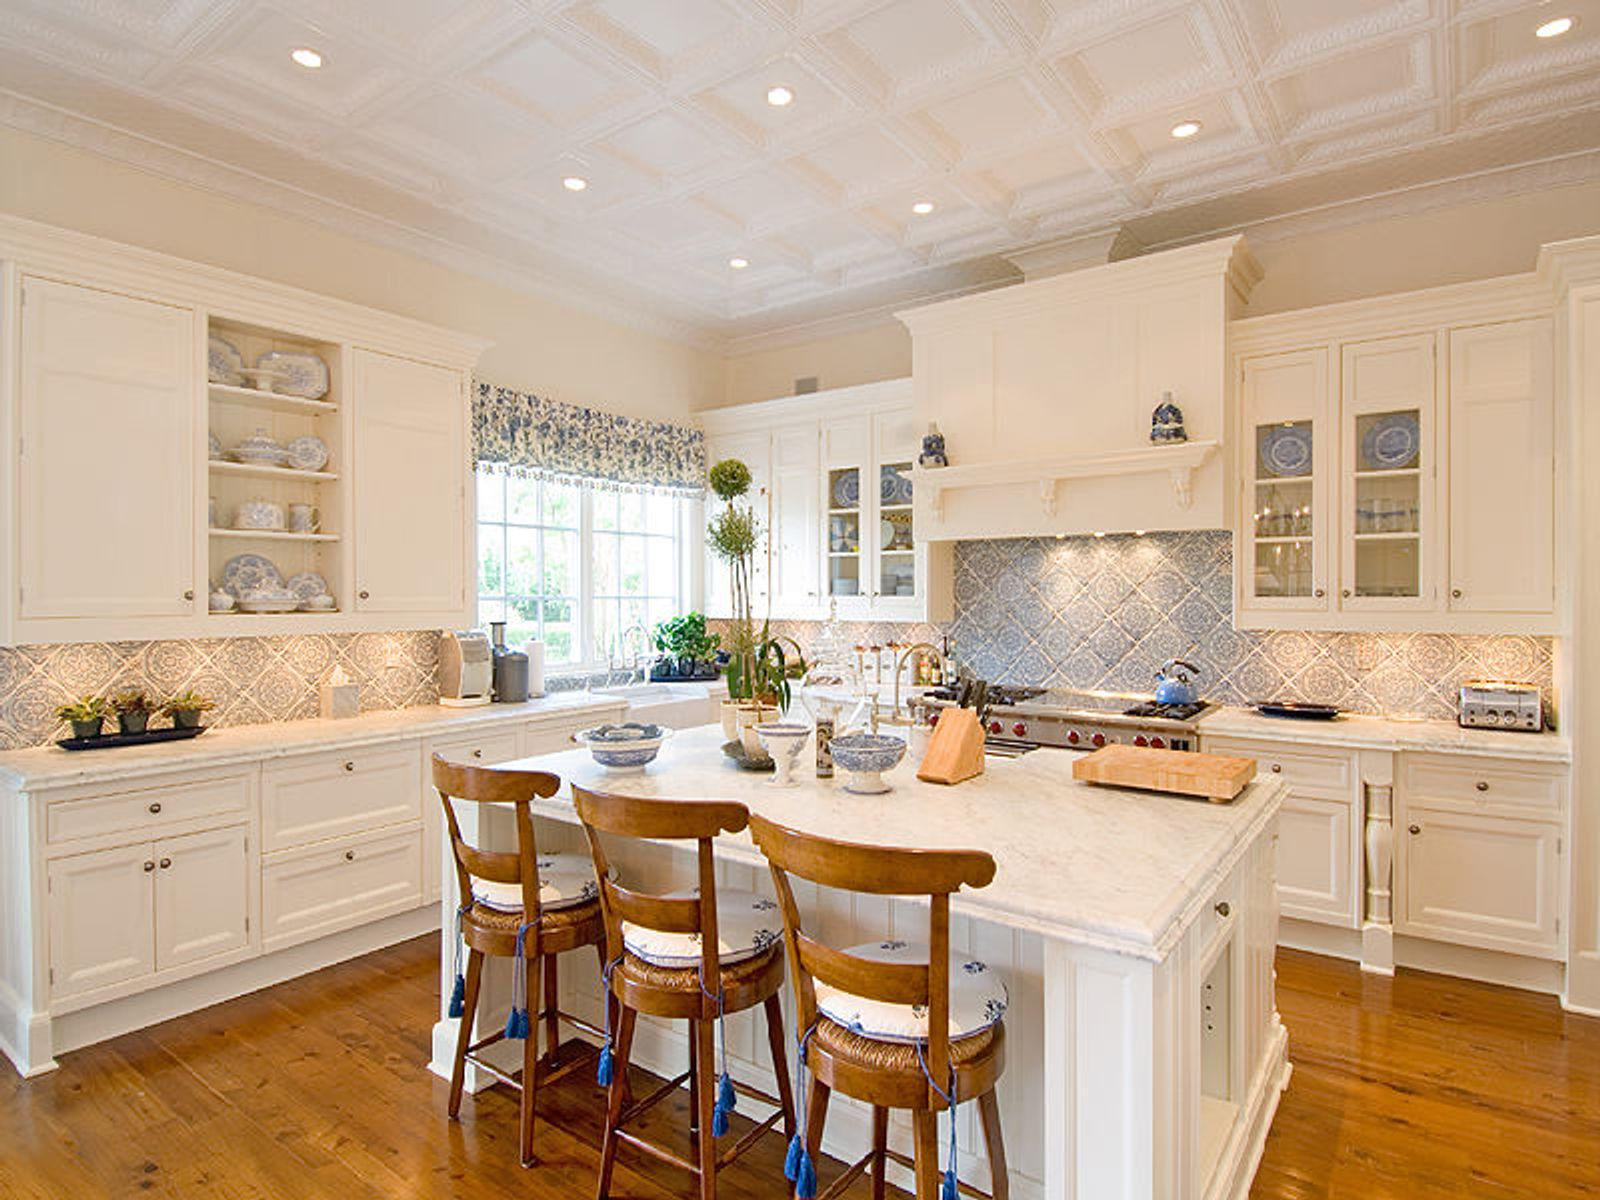 Hand-Finished Countertops and Large Center Island